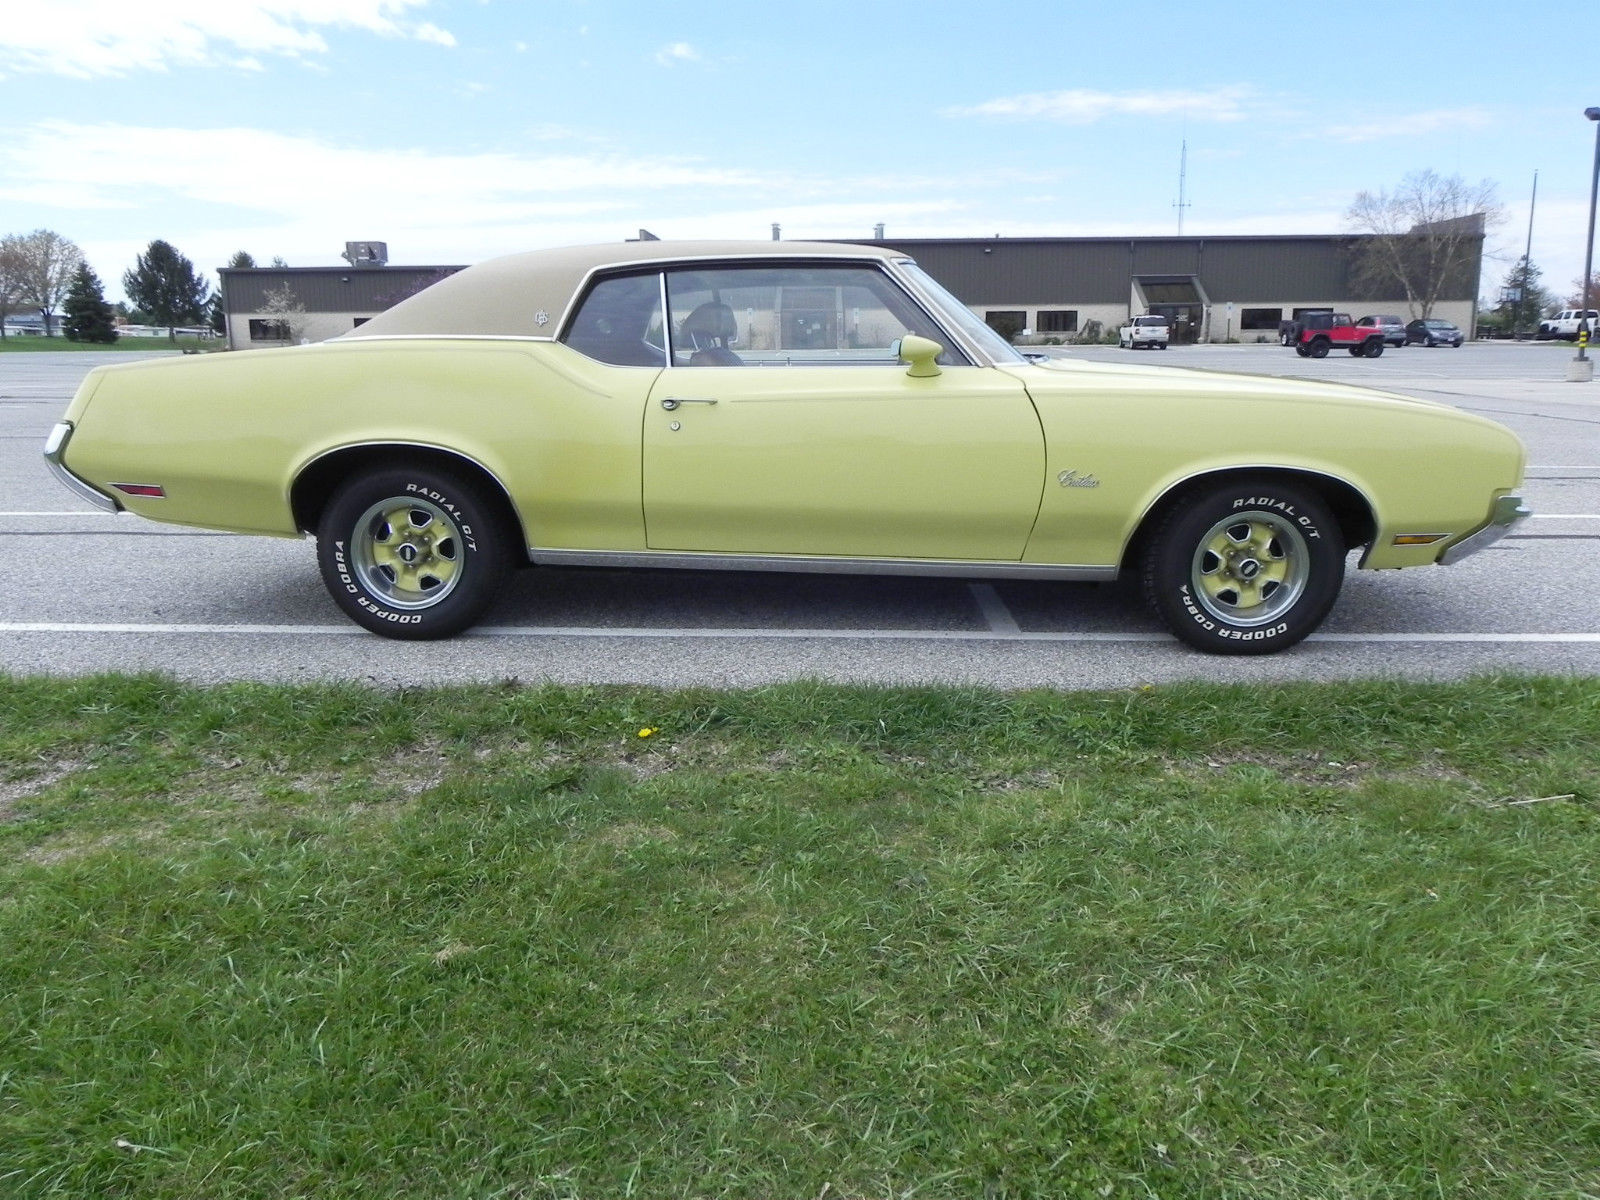 Ebay find this 1972 oldsmobile cutlass supreme is a cool non muscle cruiser